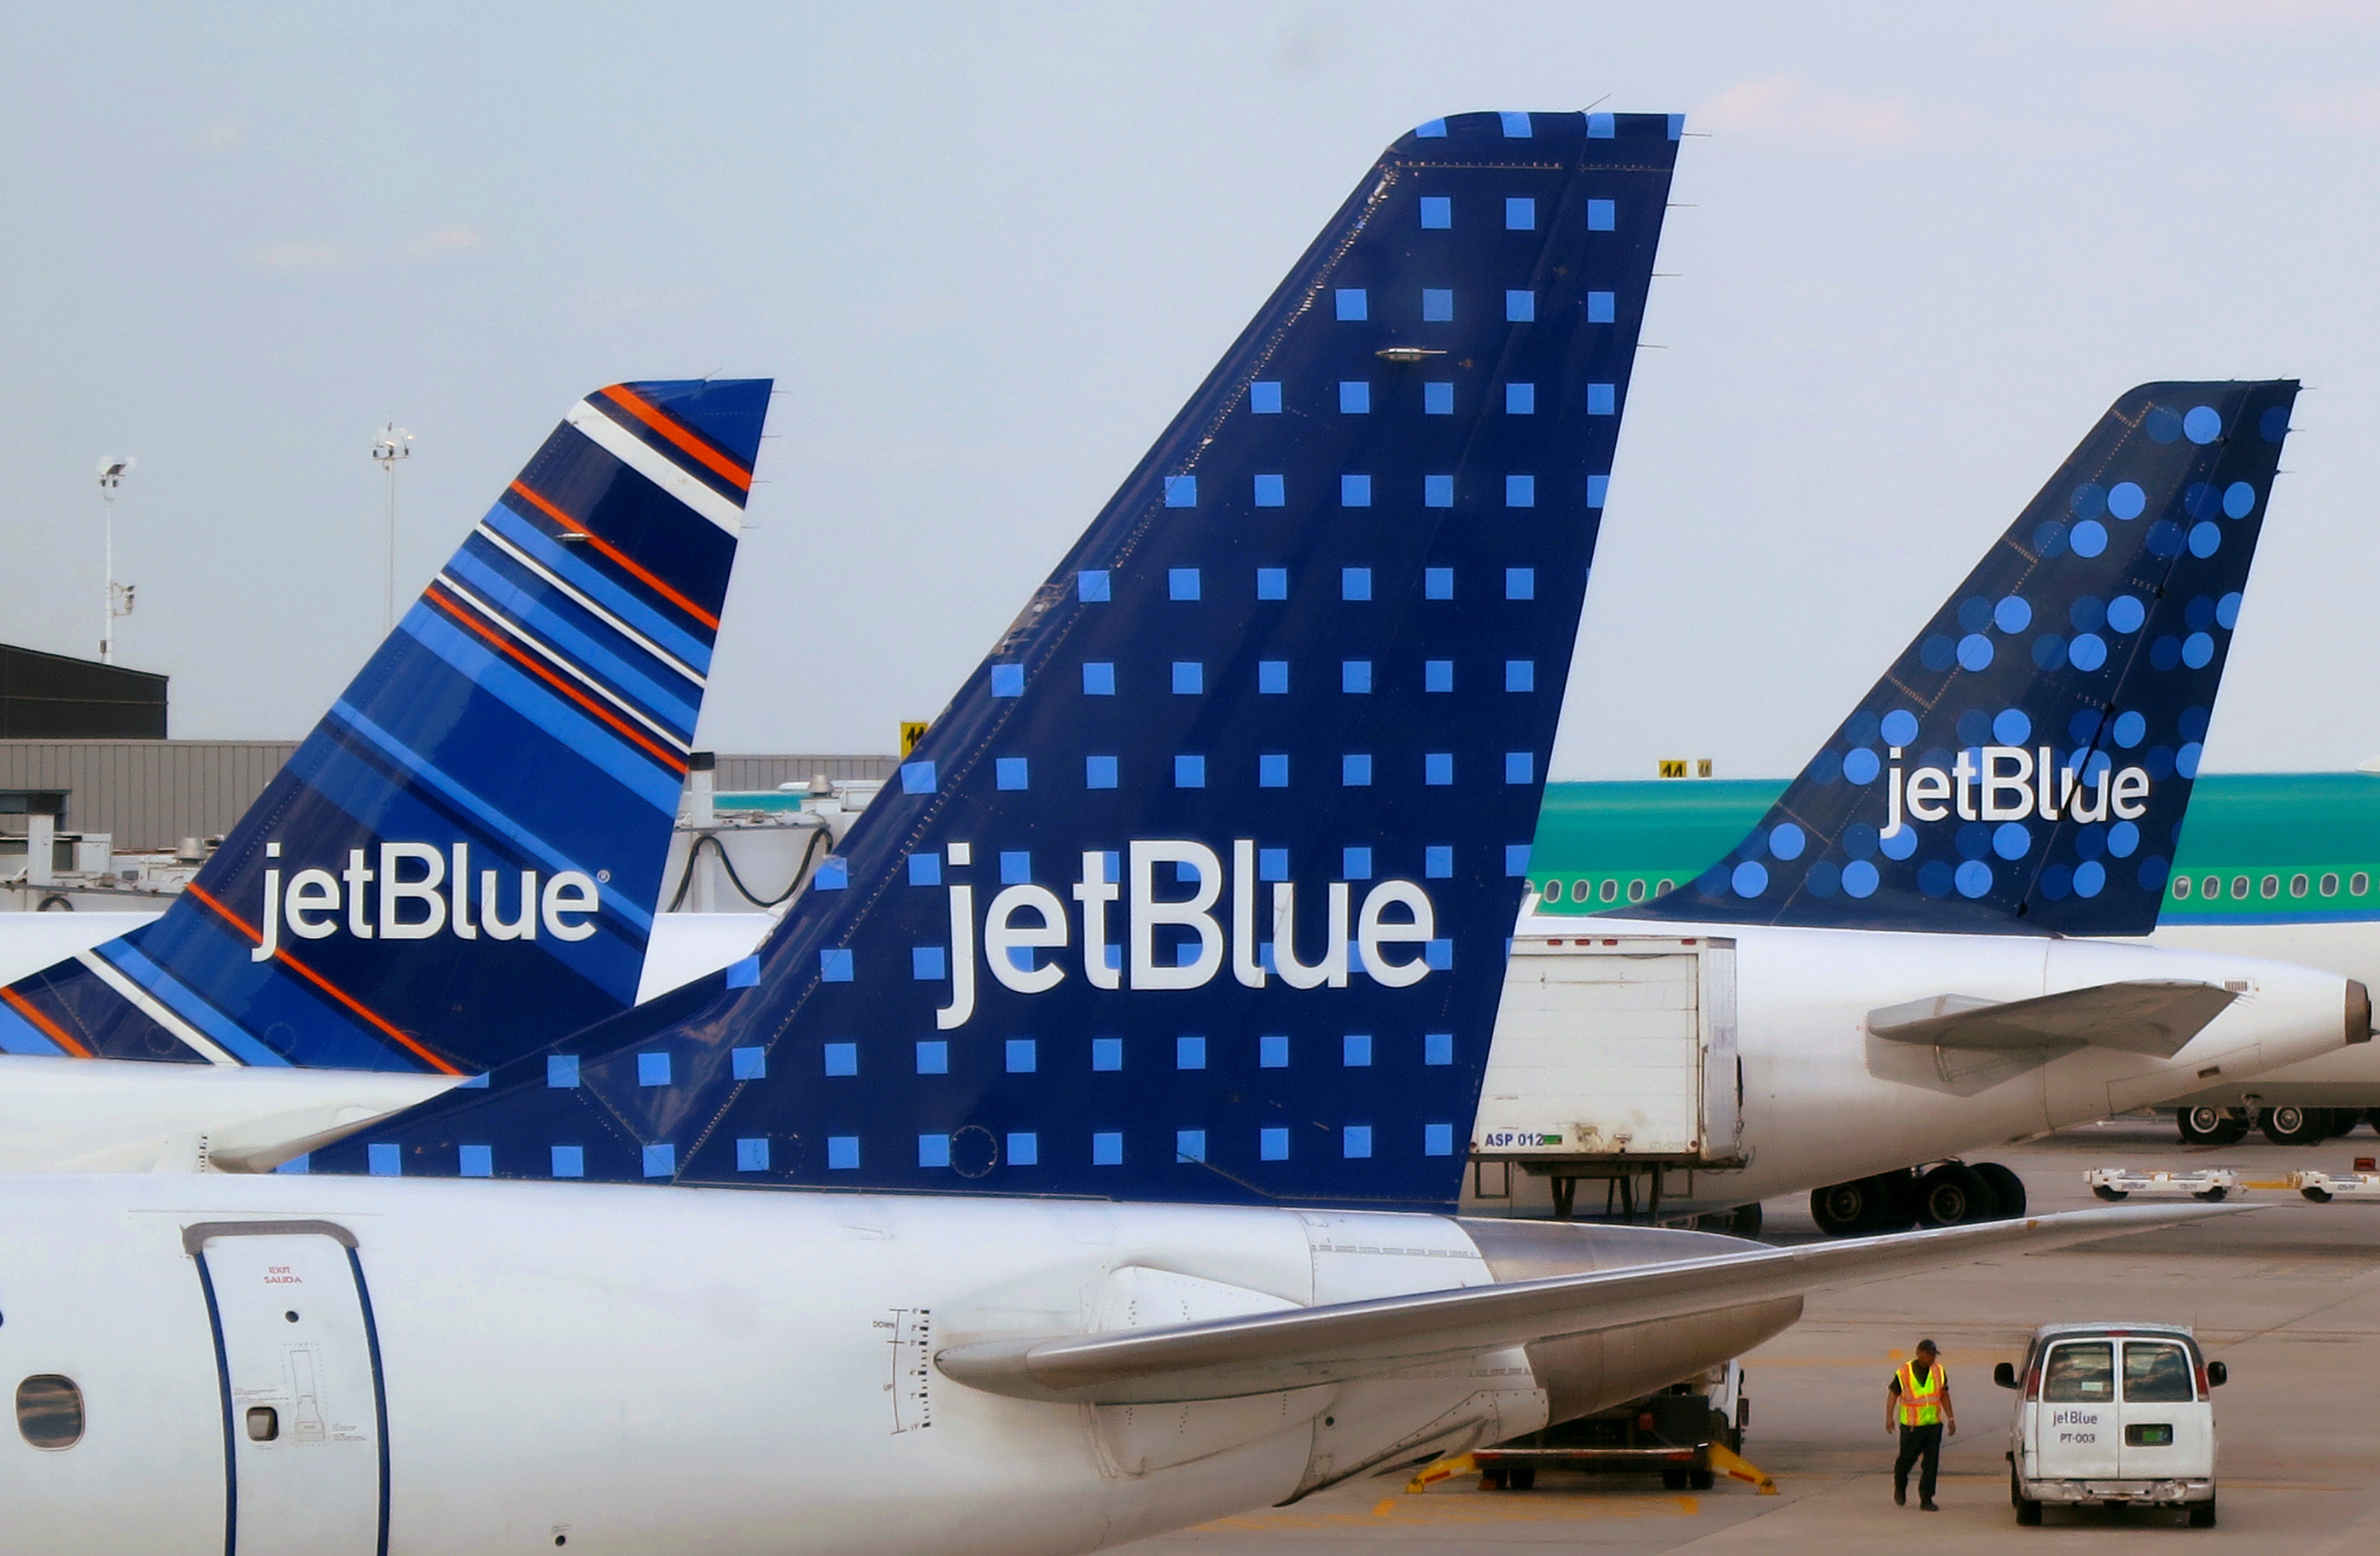 JetBlue Airways aircrafts are pictured at departure gates at John F. Kennedy International Airport in New York June 15, 2013. REUTERS/Fred Prouser/File Photo